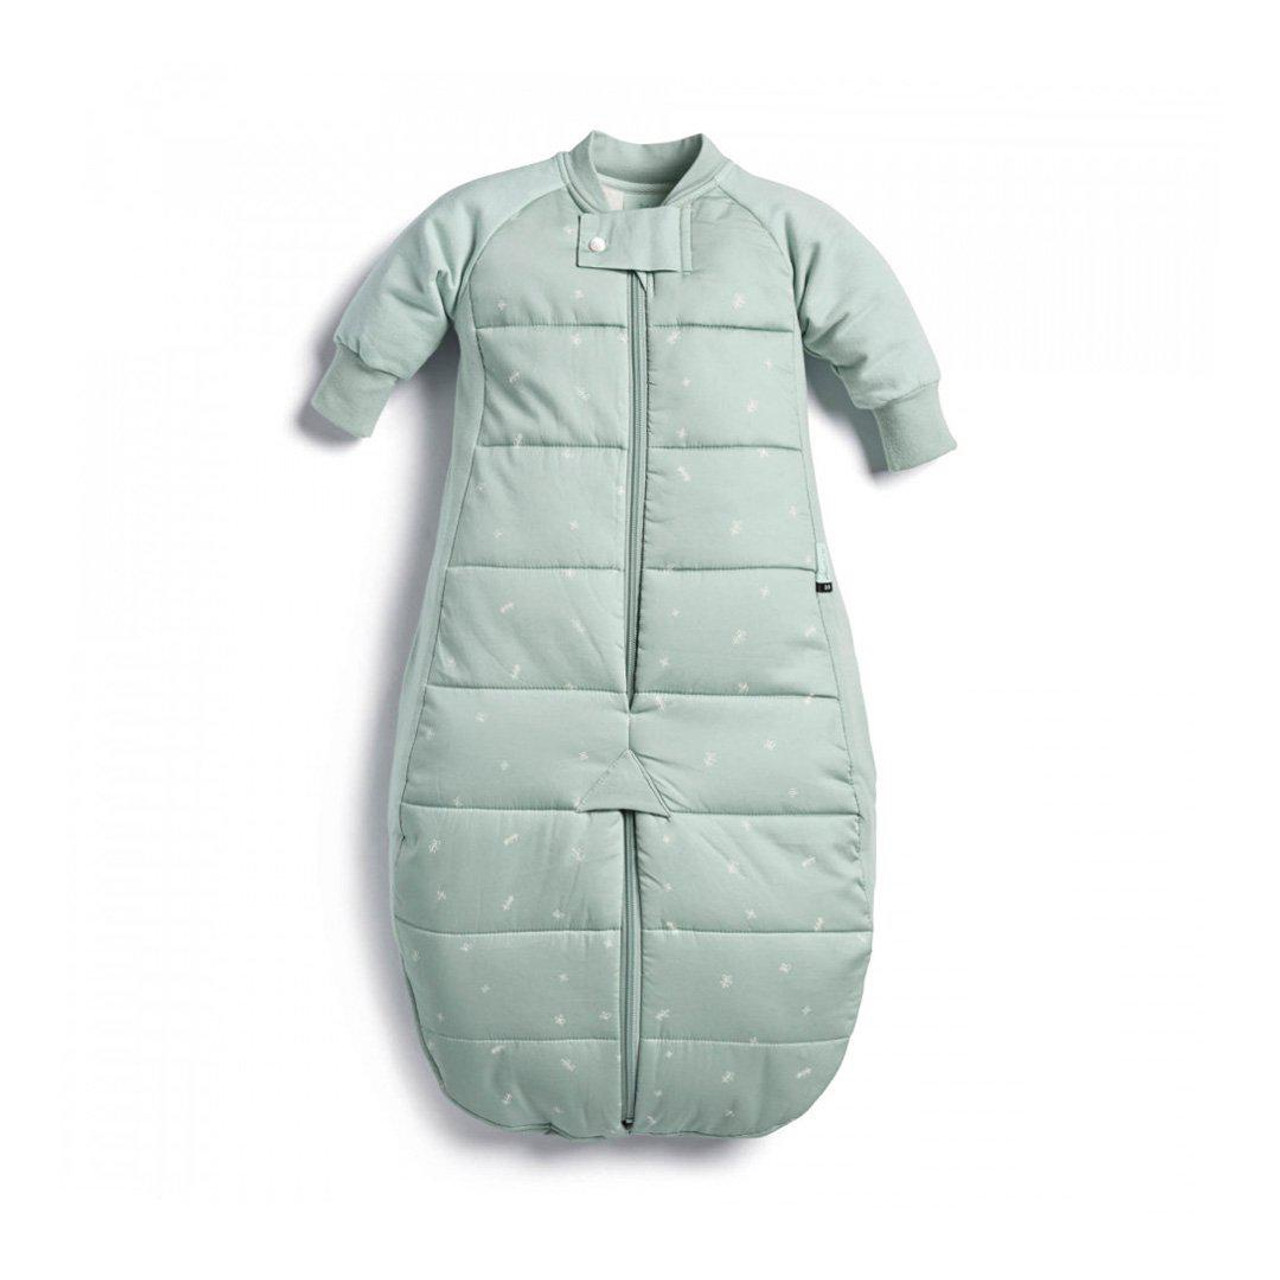 Ergopouch Sleepsuit Bag 3.5 Tog 8-24 Months at Baby Barn Discounts Sleep Suit Bag converts from a Sleeping Bag to a Sleep Suit with legs using the 4-way zippers.